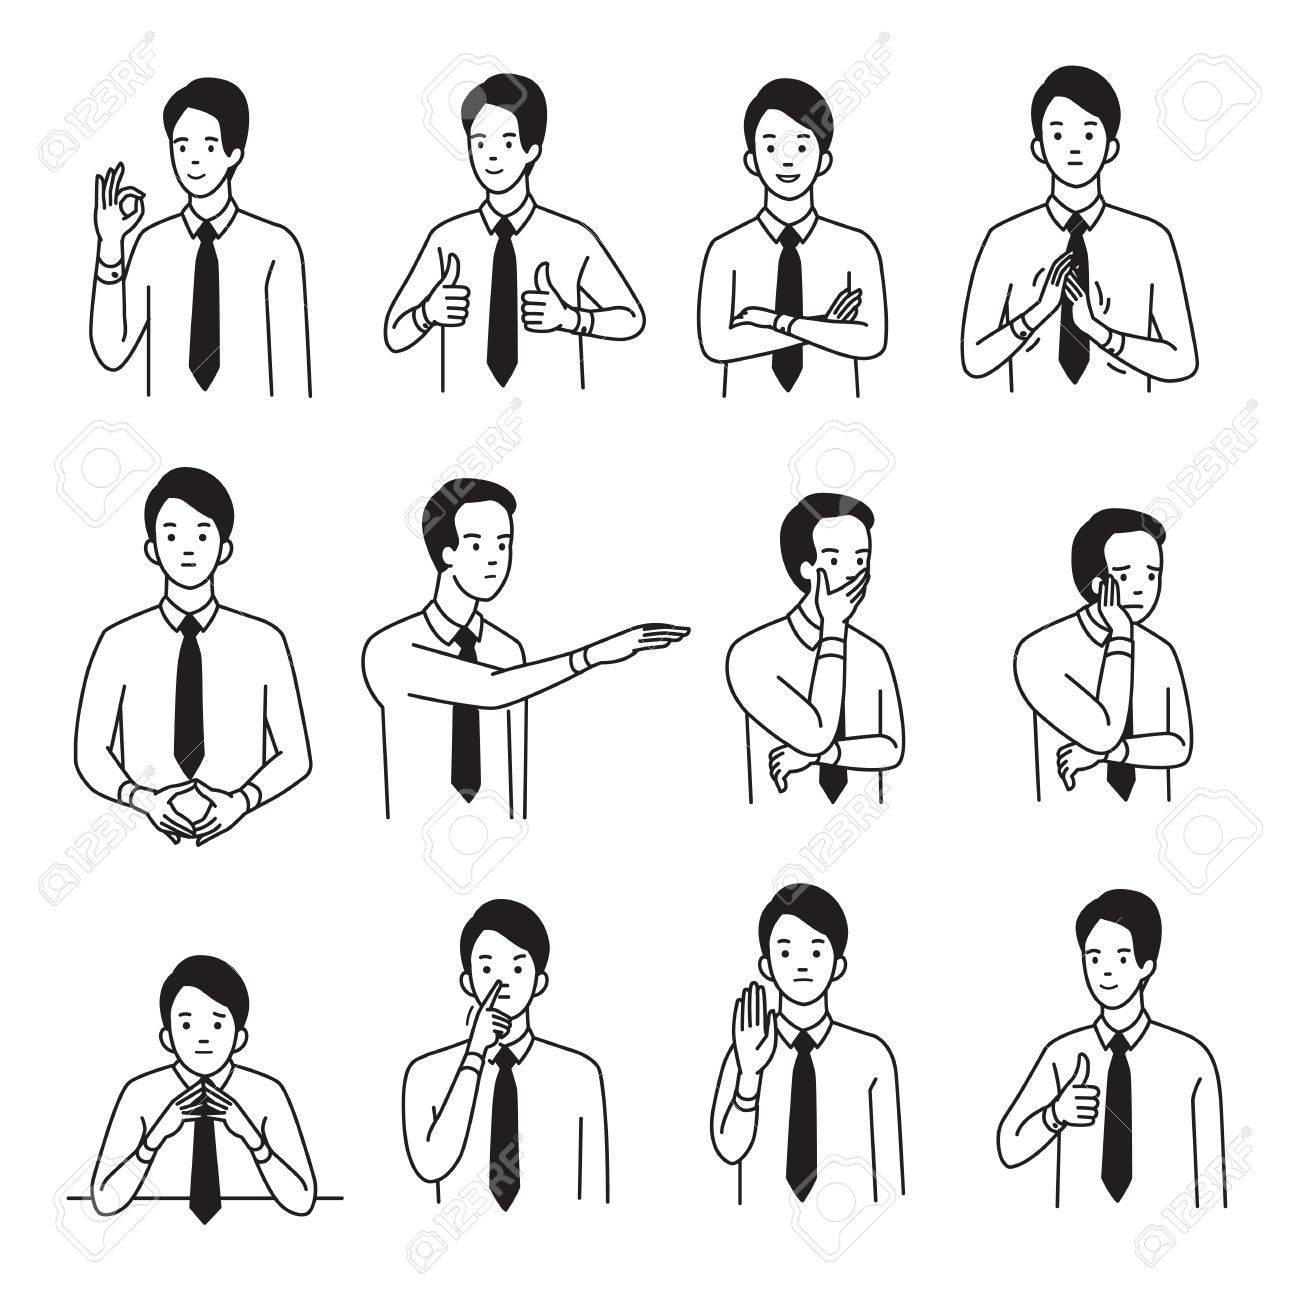 Vector illustration character portrait set of businessman with various hand sign body language and emotion expression. Outline, hand draw sketching style, black and white design. - 83870653